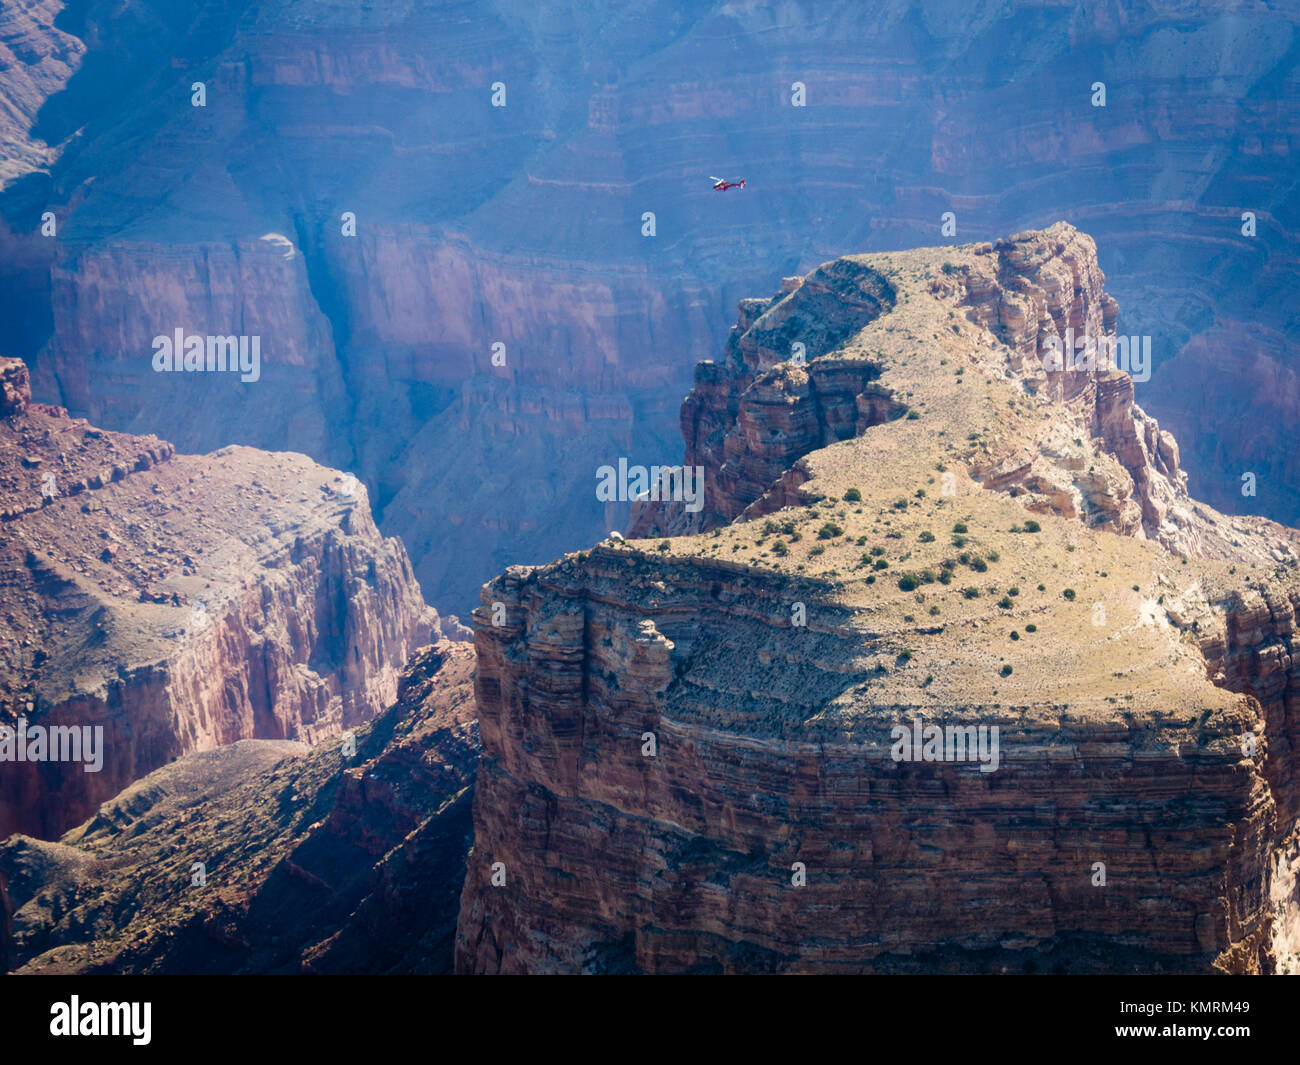 A helicopter durng a sightseeing flight at the Grand Canyon National Park. - Stock Image